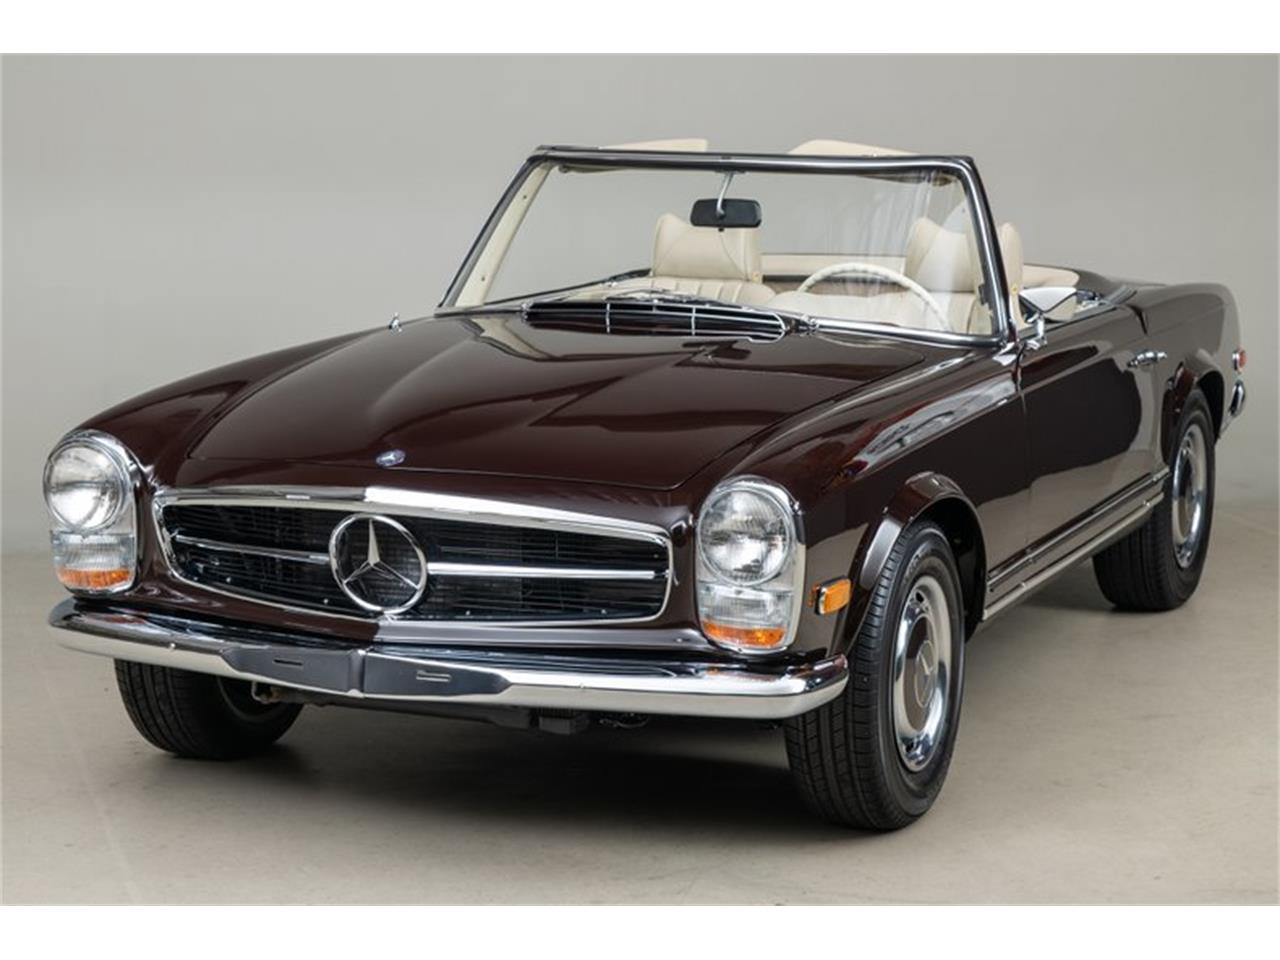 Large Picture of Classic 1969 Mercedes-Benz 280SL located in Scotts Valley California Auction Vehicle - QALE